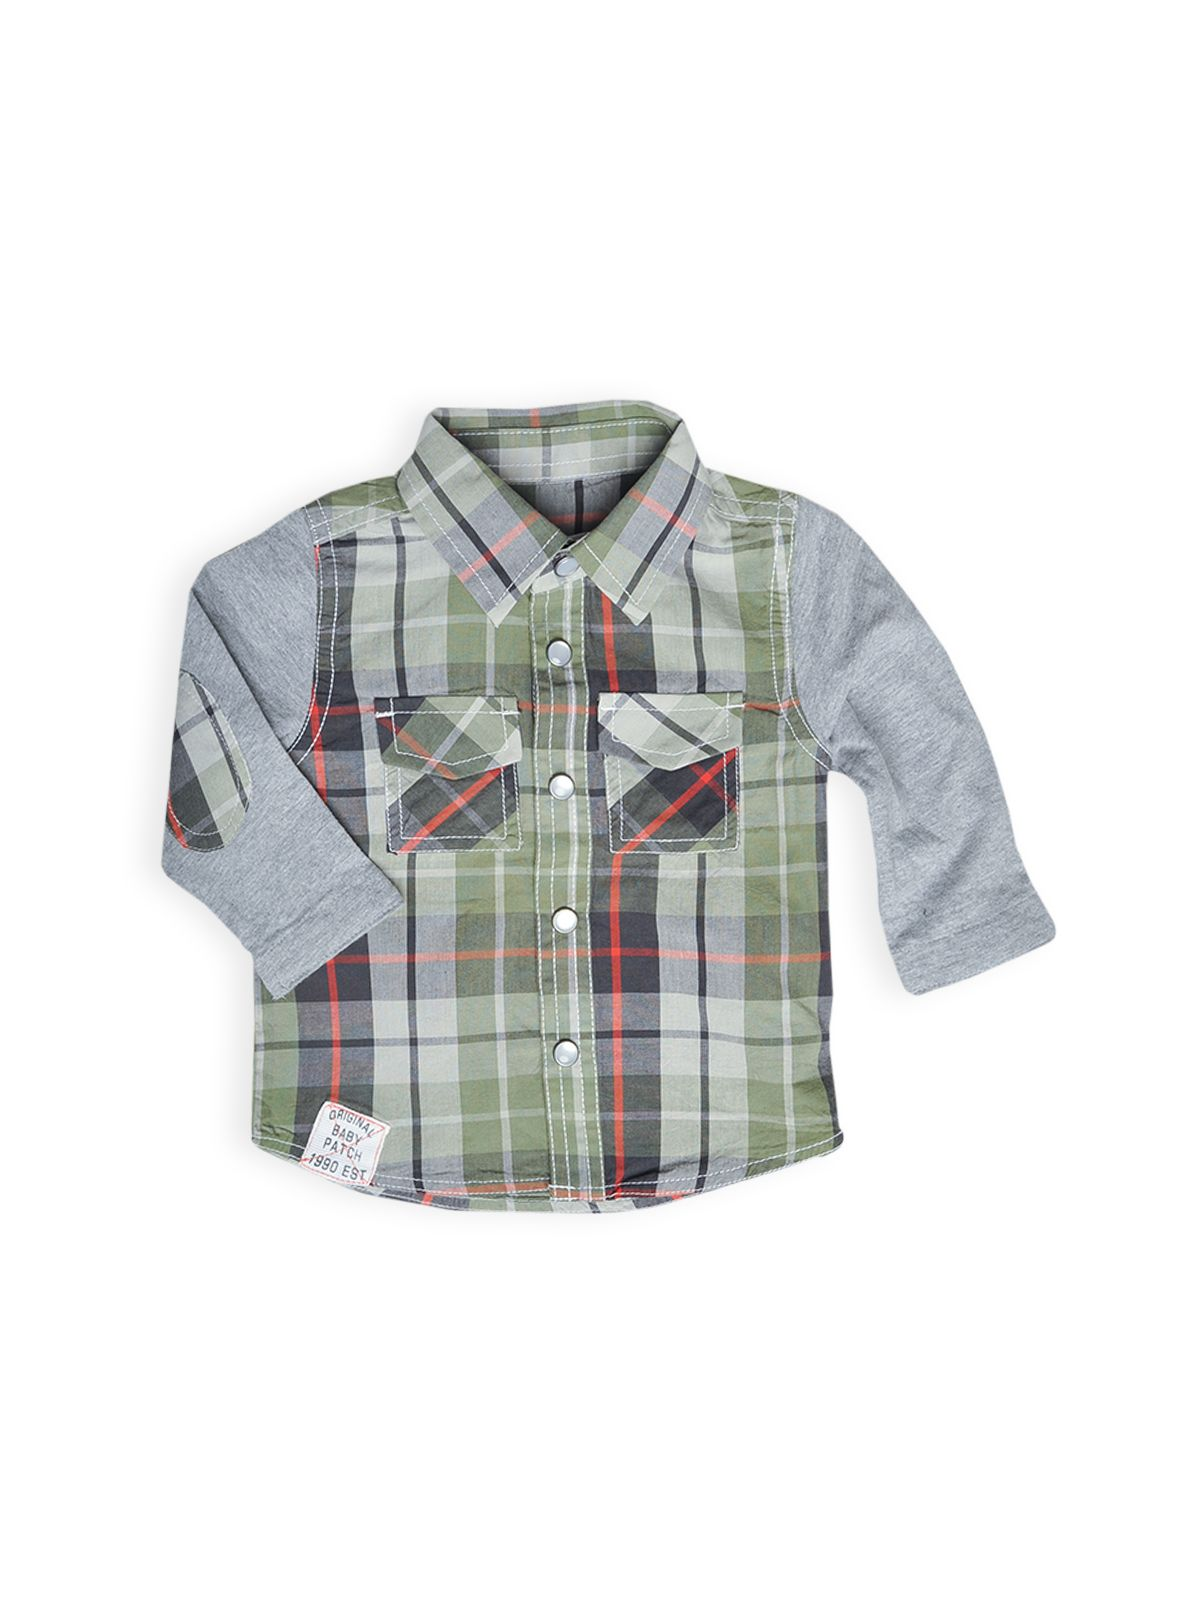 Boys knit sleeve shirt